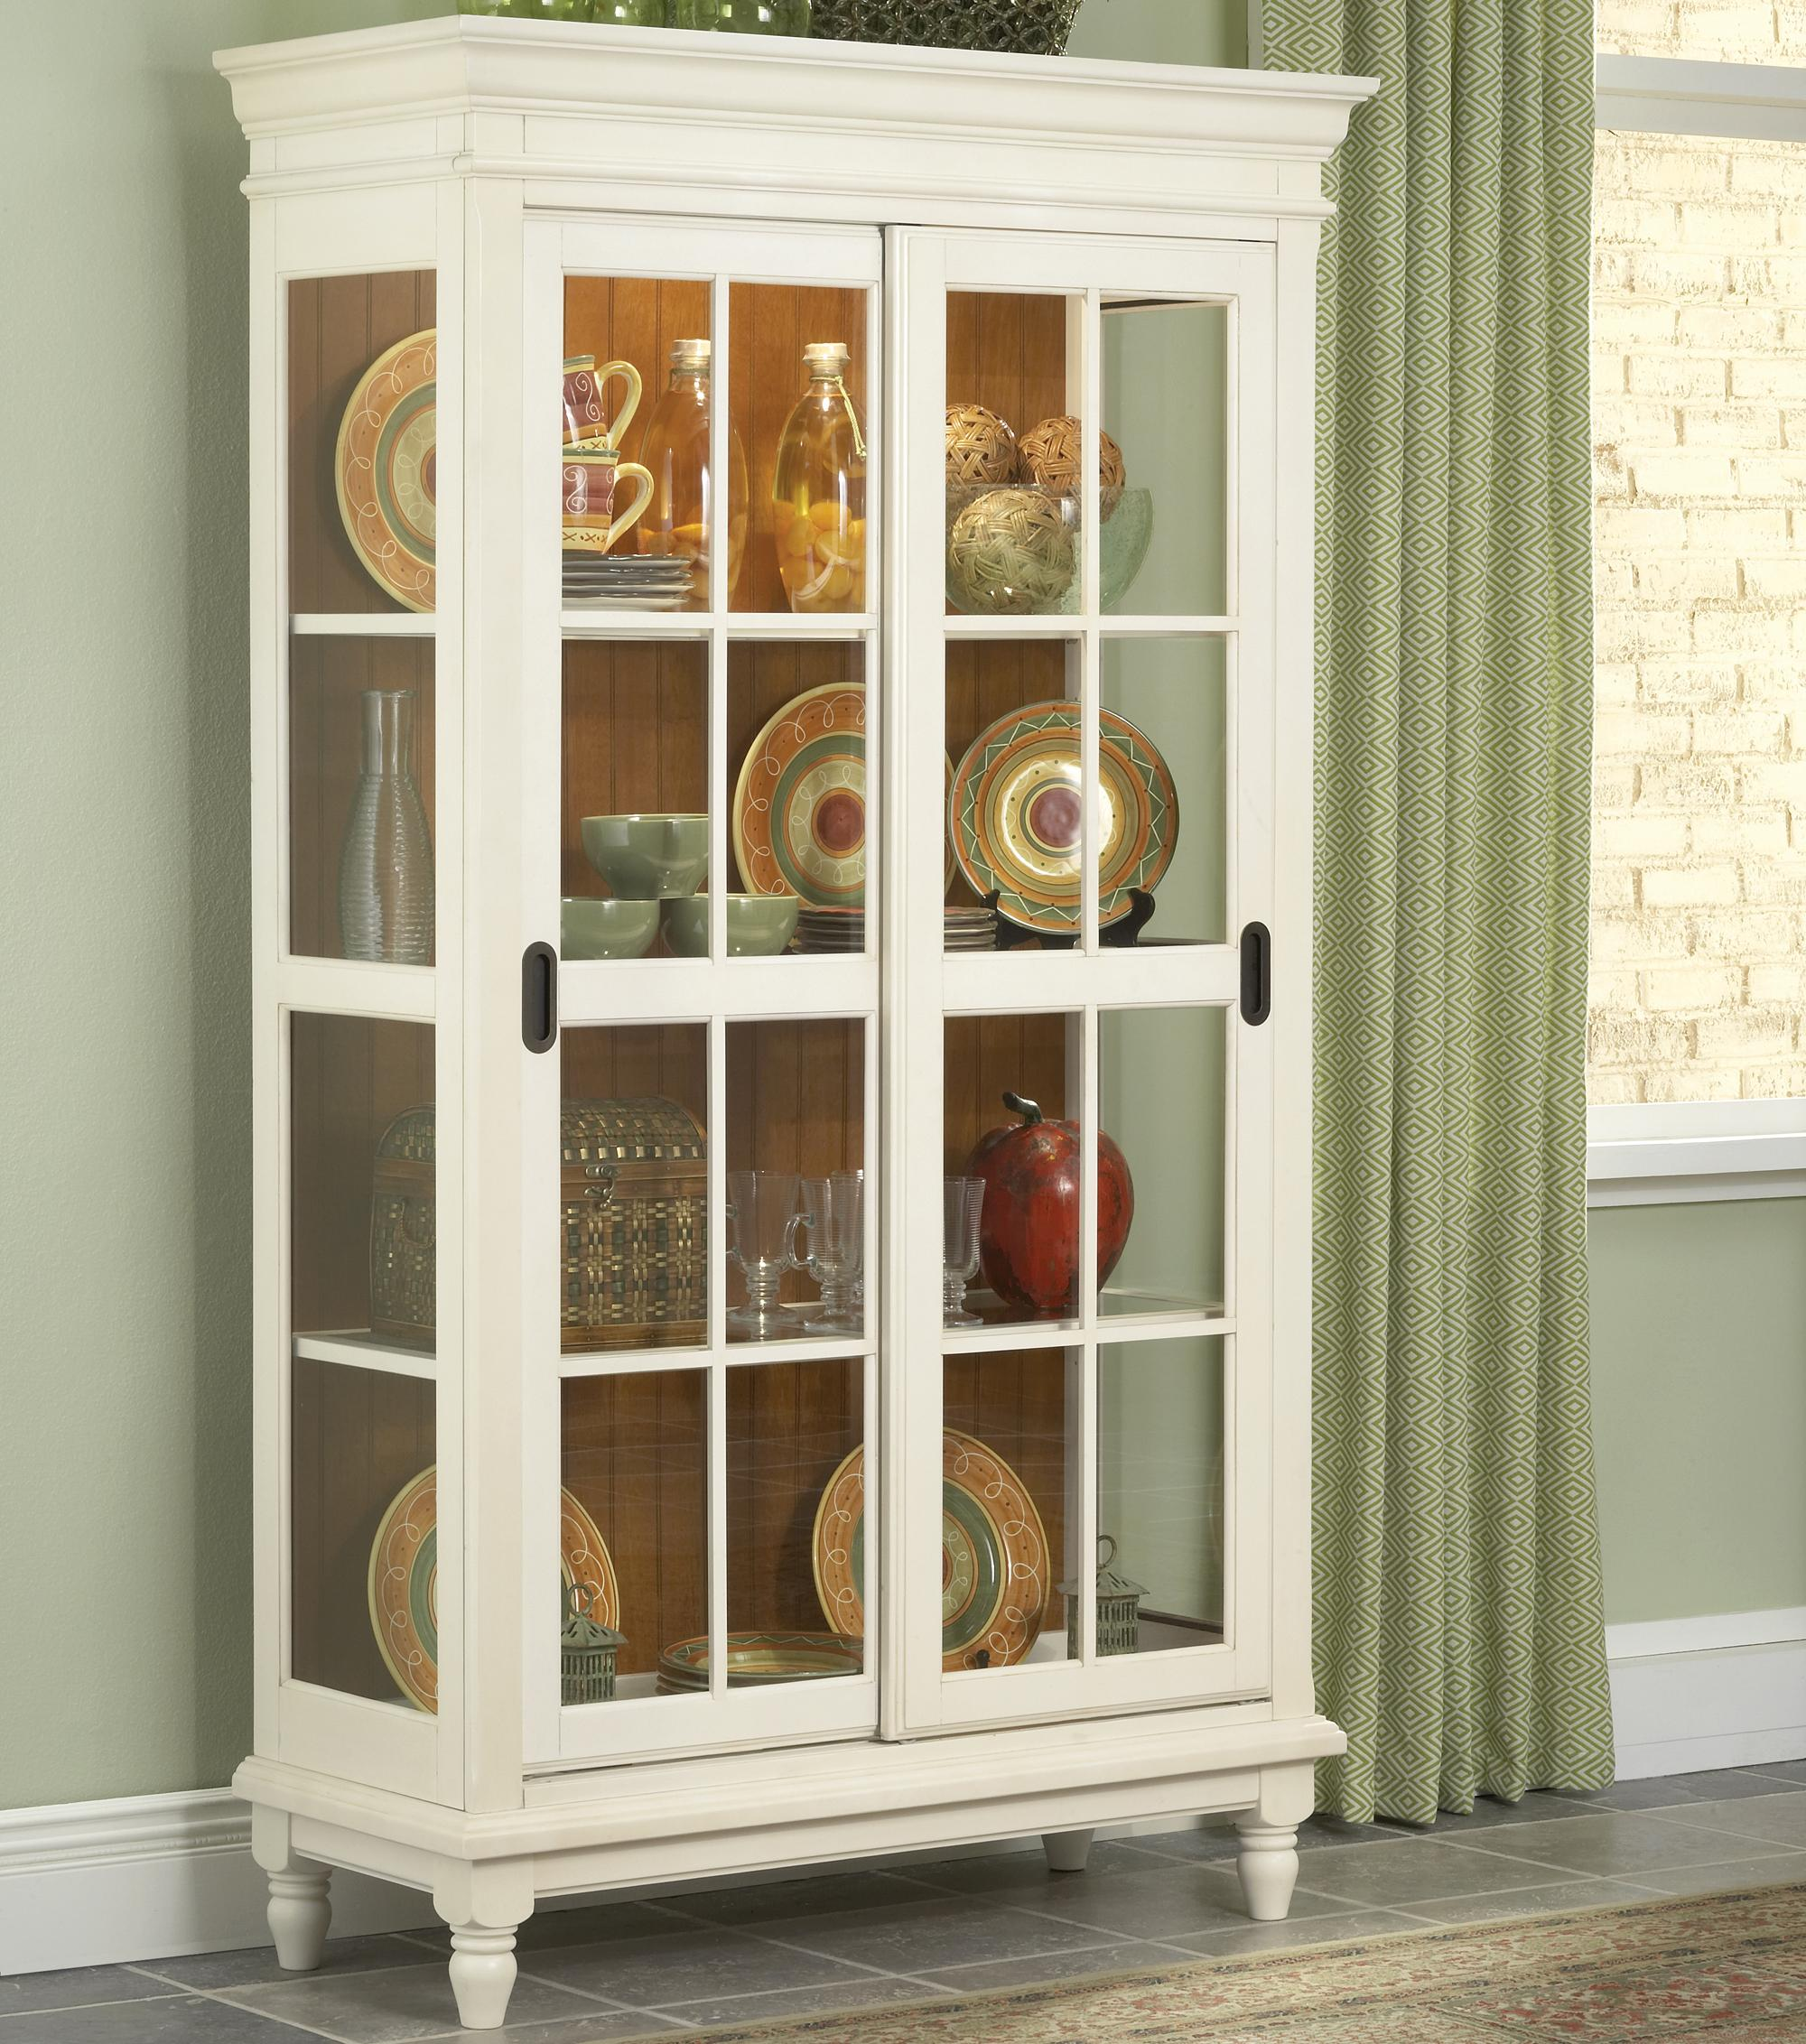 Curio Cabinet with Crown Moulding, Turned Feet, and Sliding Glass ...